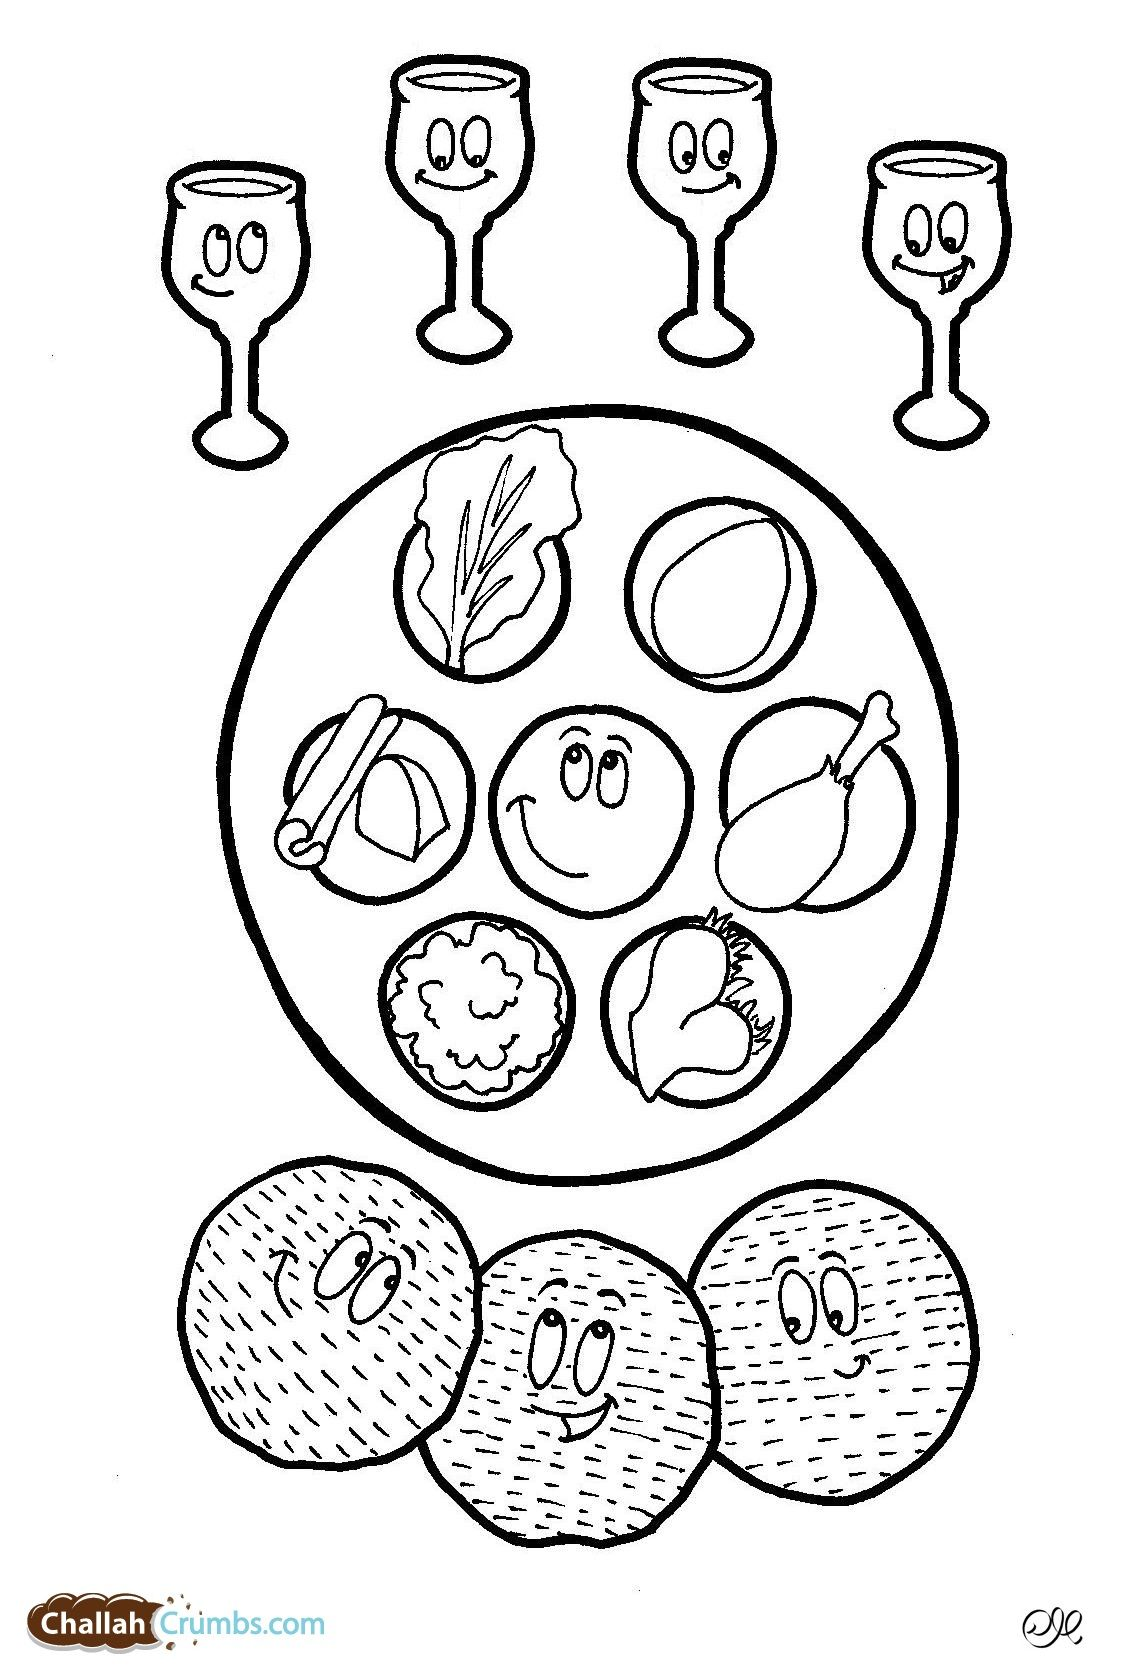 this coloring page has it all: four cups of wine, three pieces of ... - Passover Coloring Pages Printable